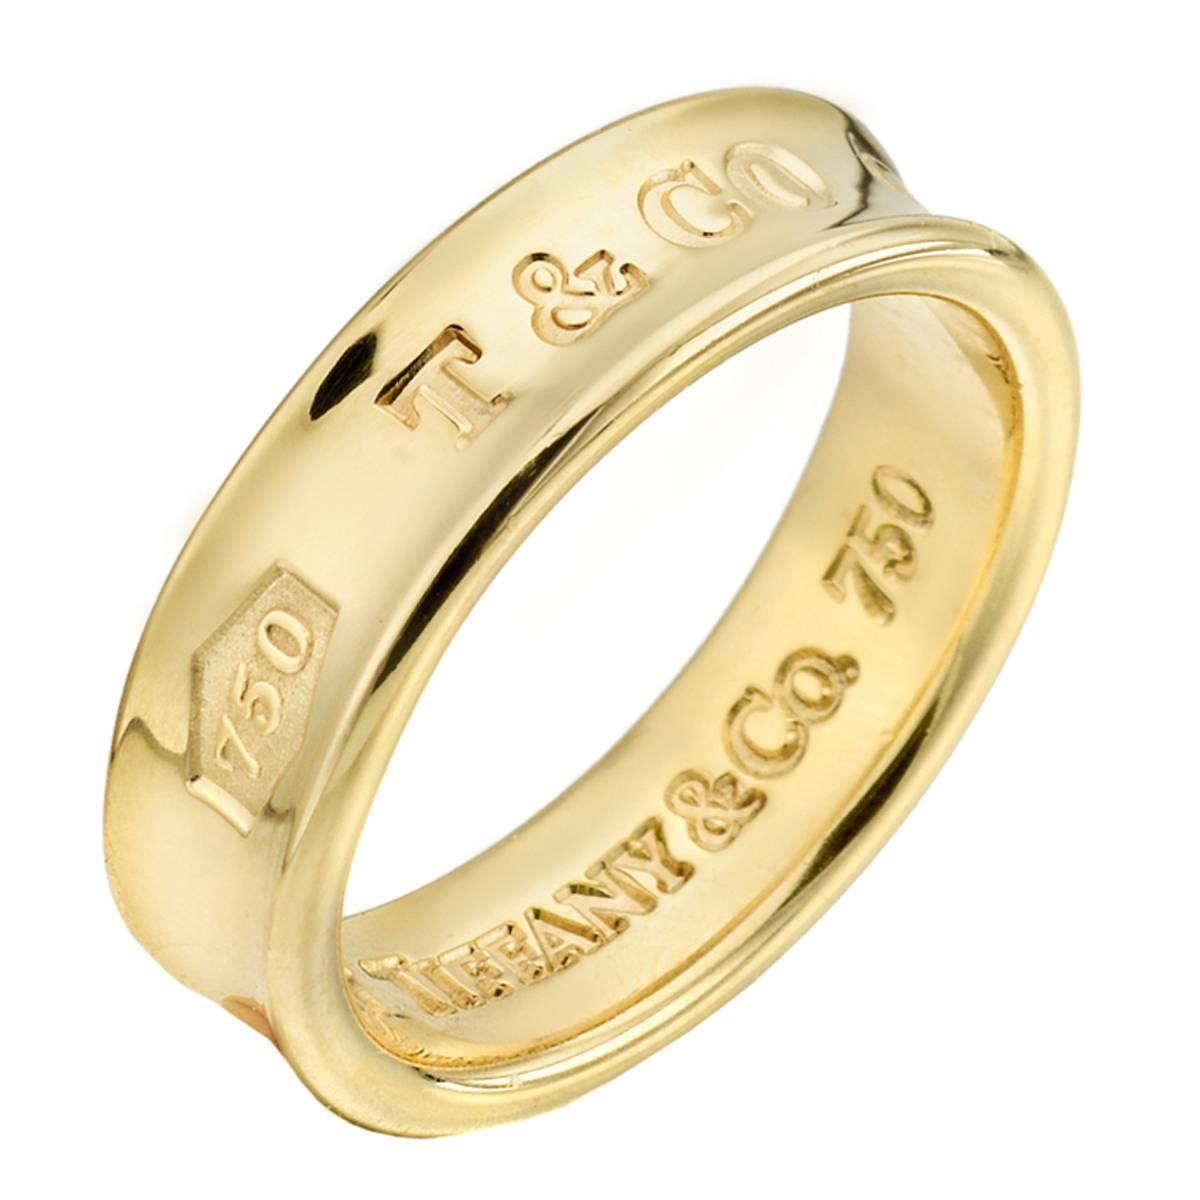 Tiffany And Co 1837 Gold Wedding Band Ring At 1stdibs